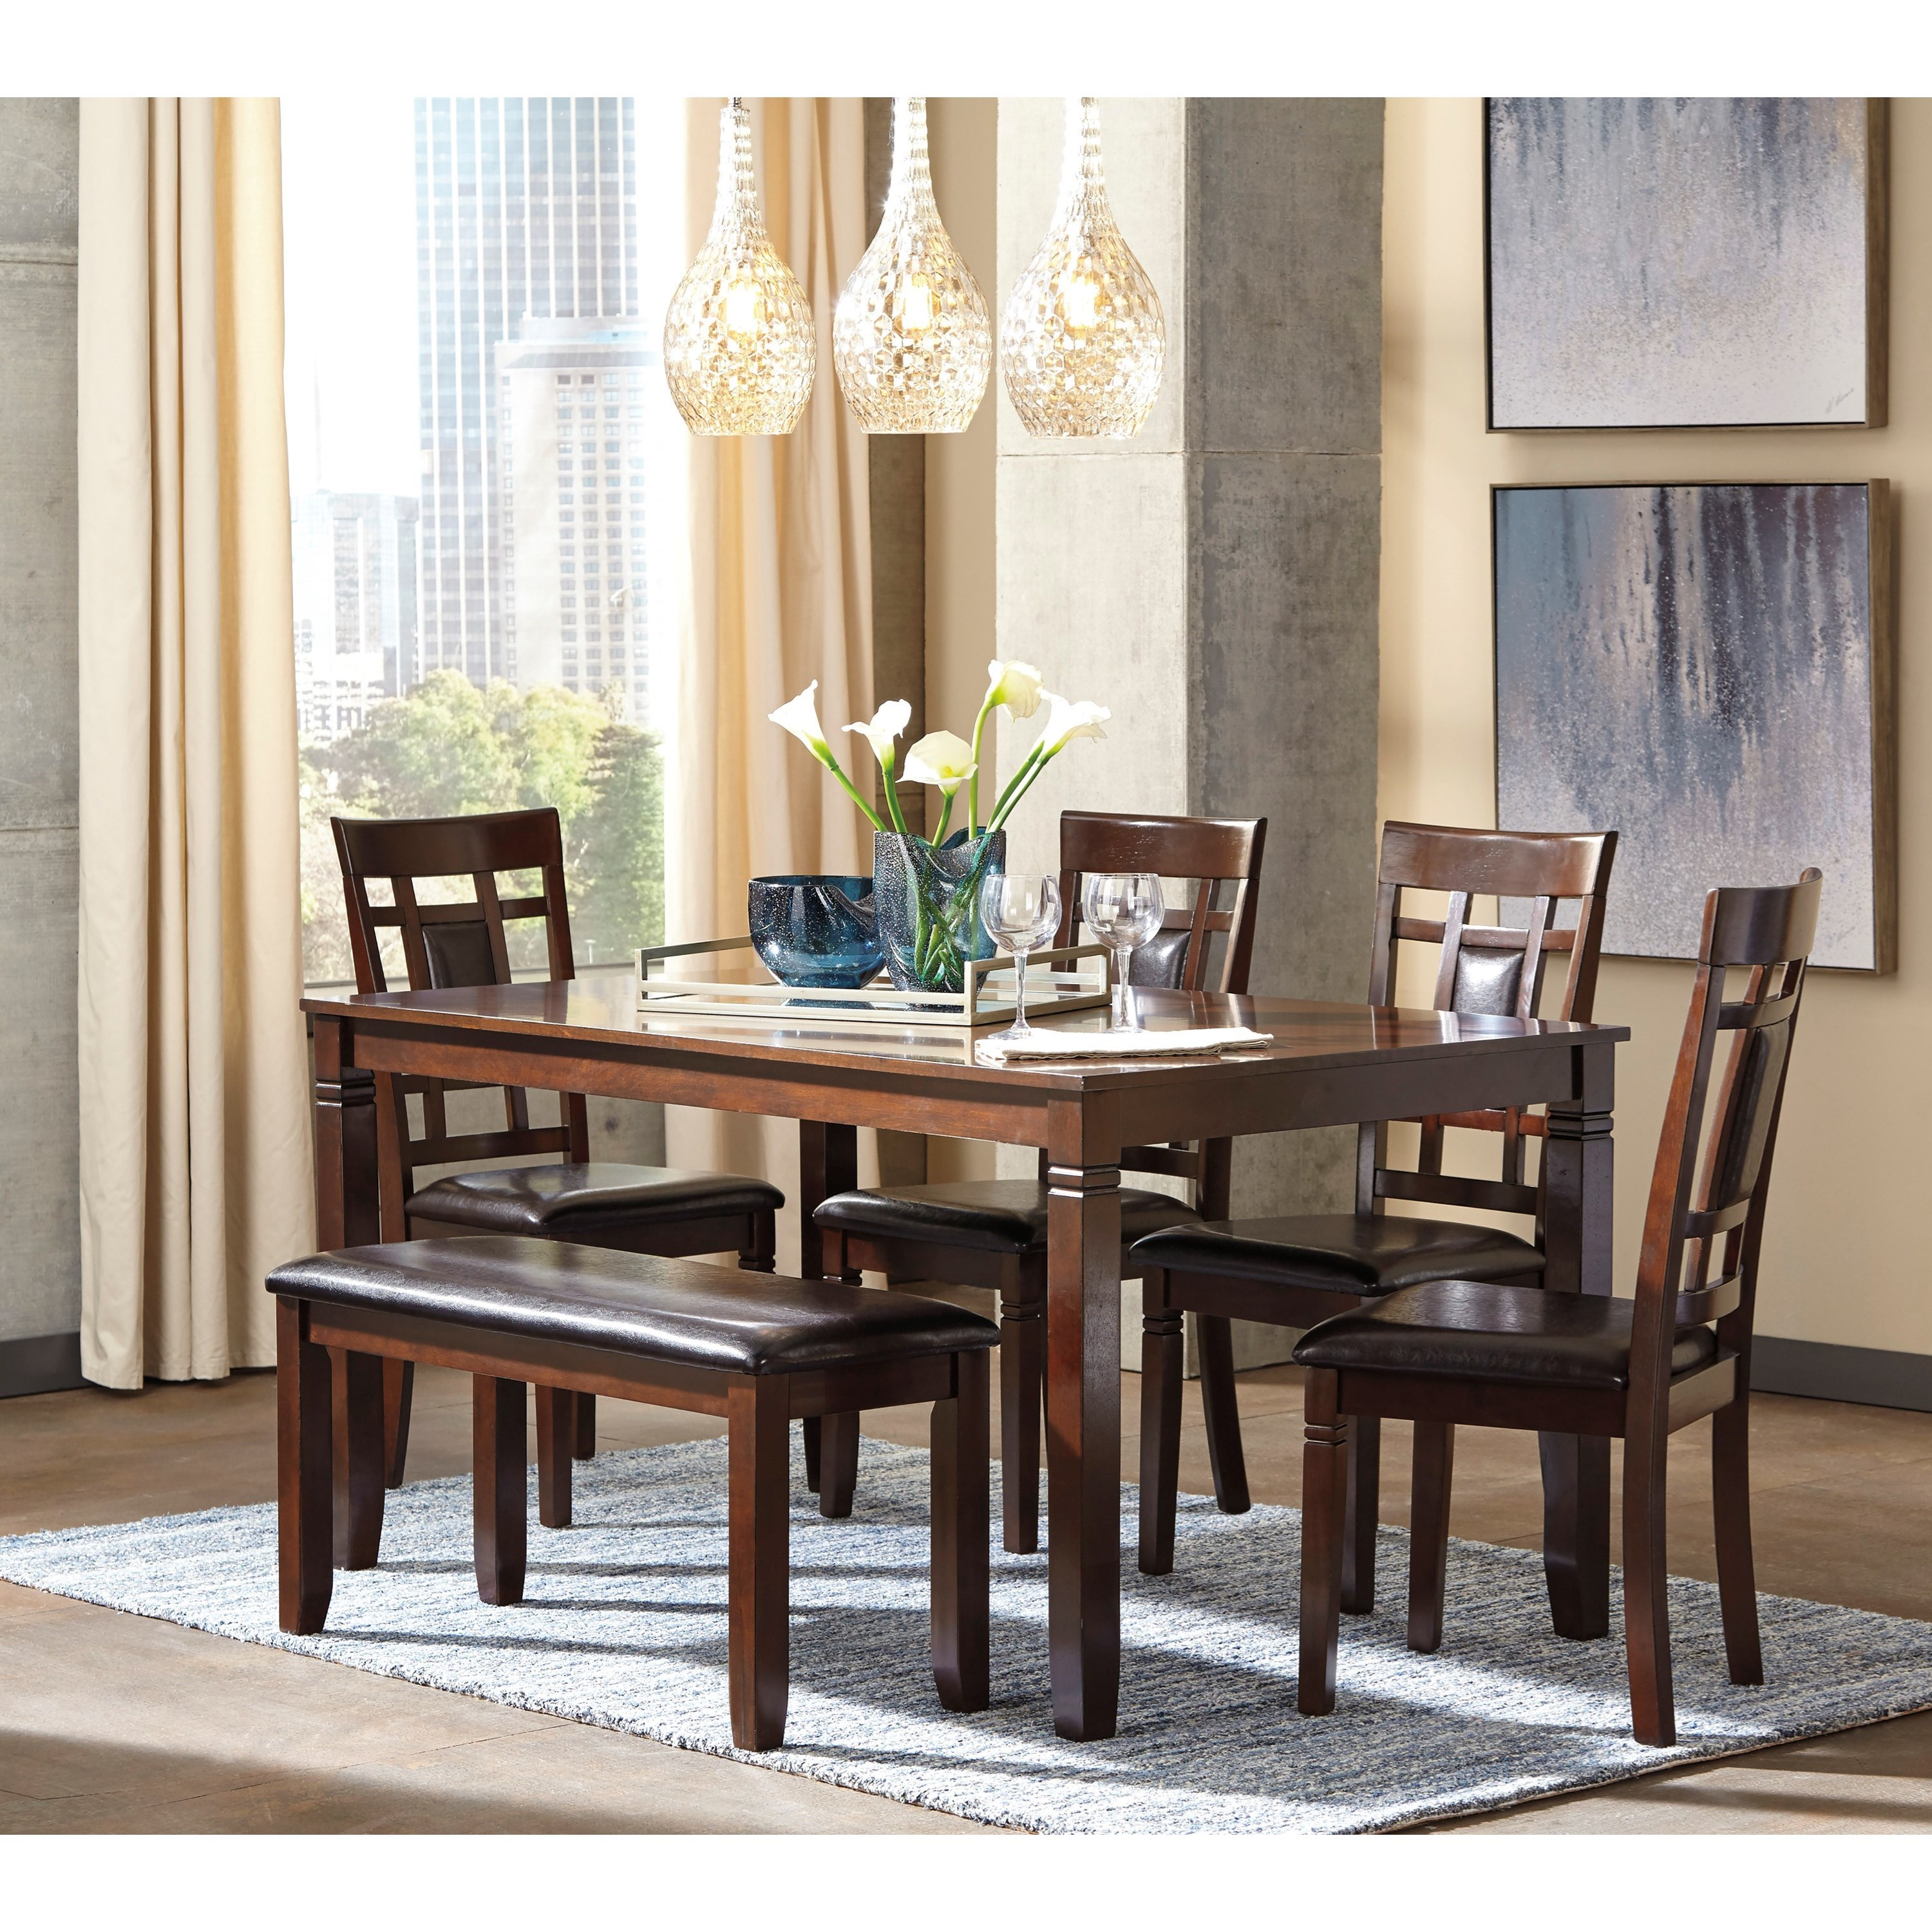 signature design by ashley bennox contemporary 6 piece dining room table set with bench olinde. Black Bedroom Furniture Sets. Home Design Ideas